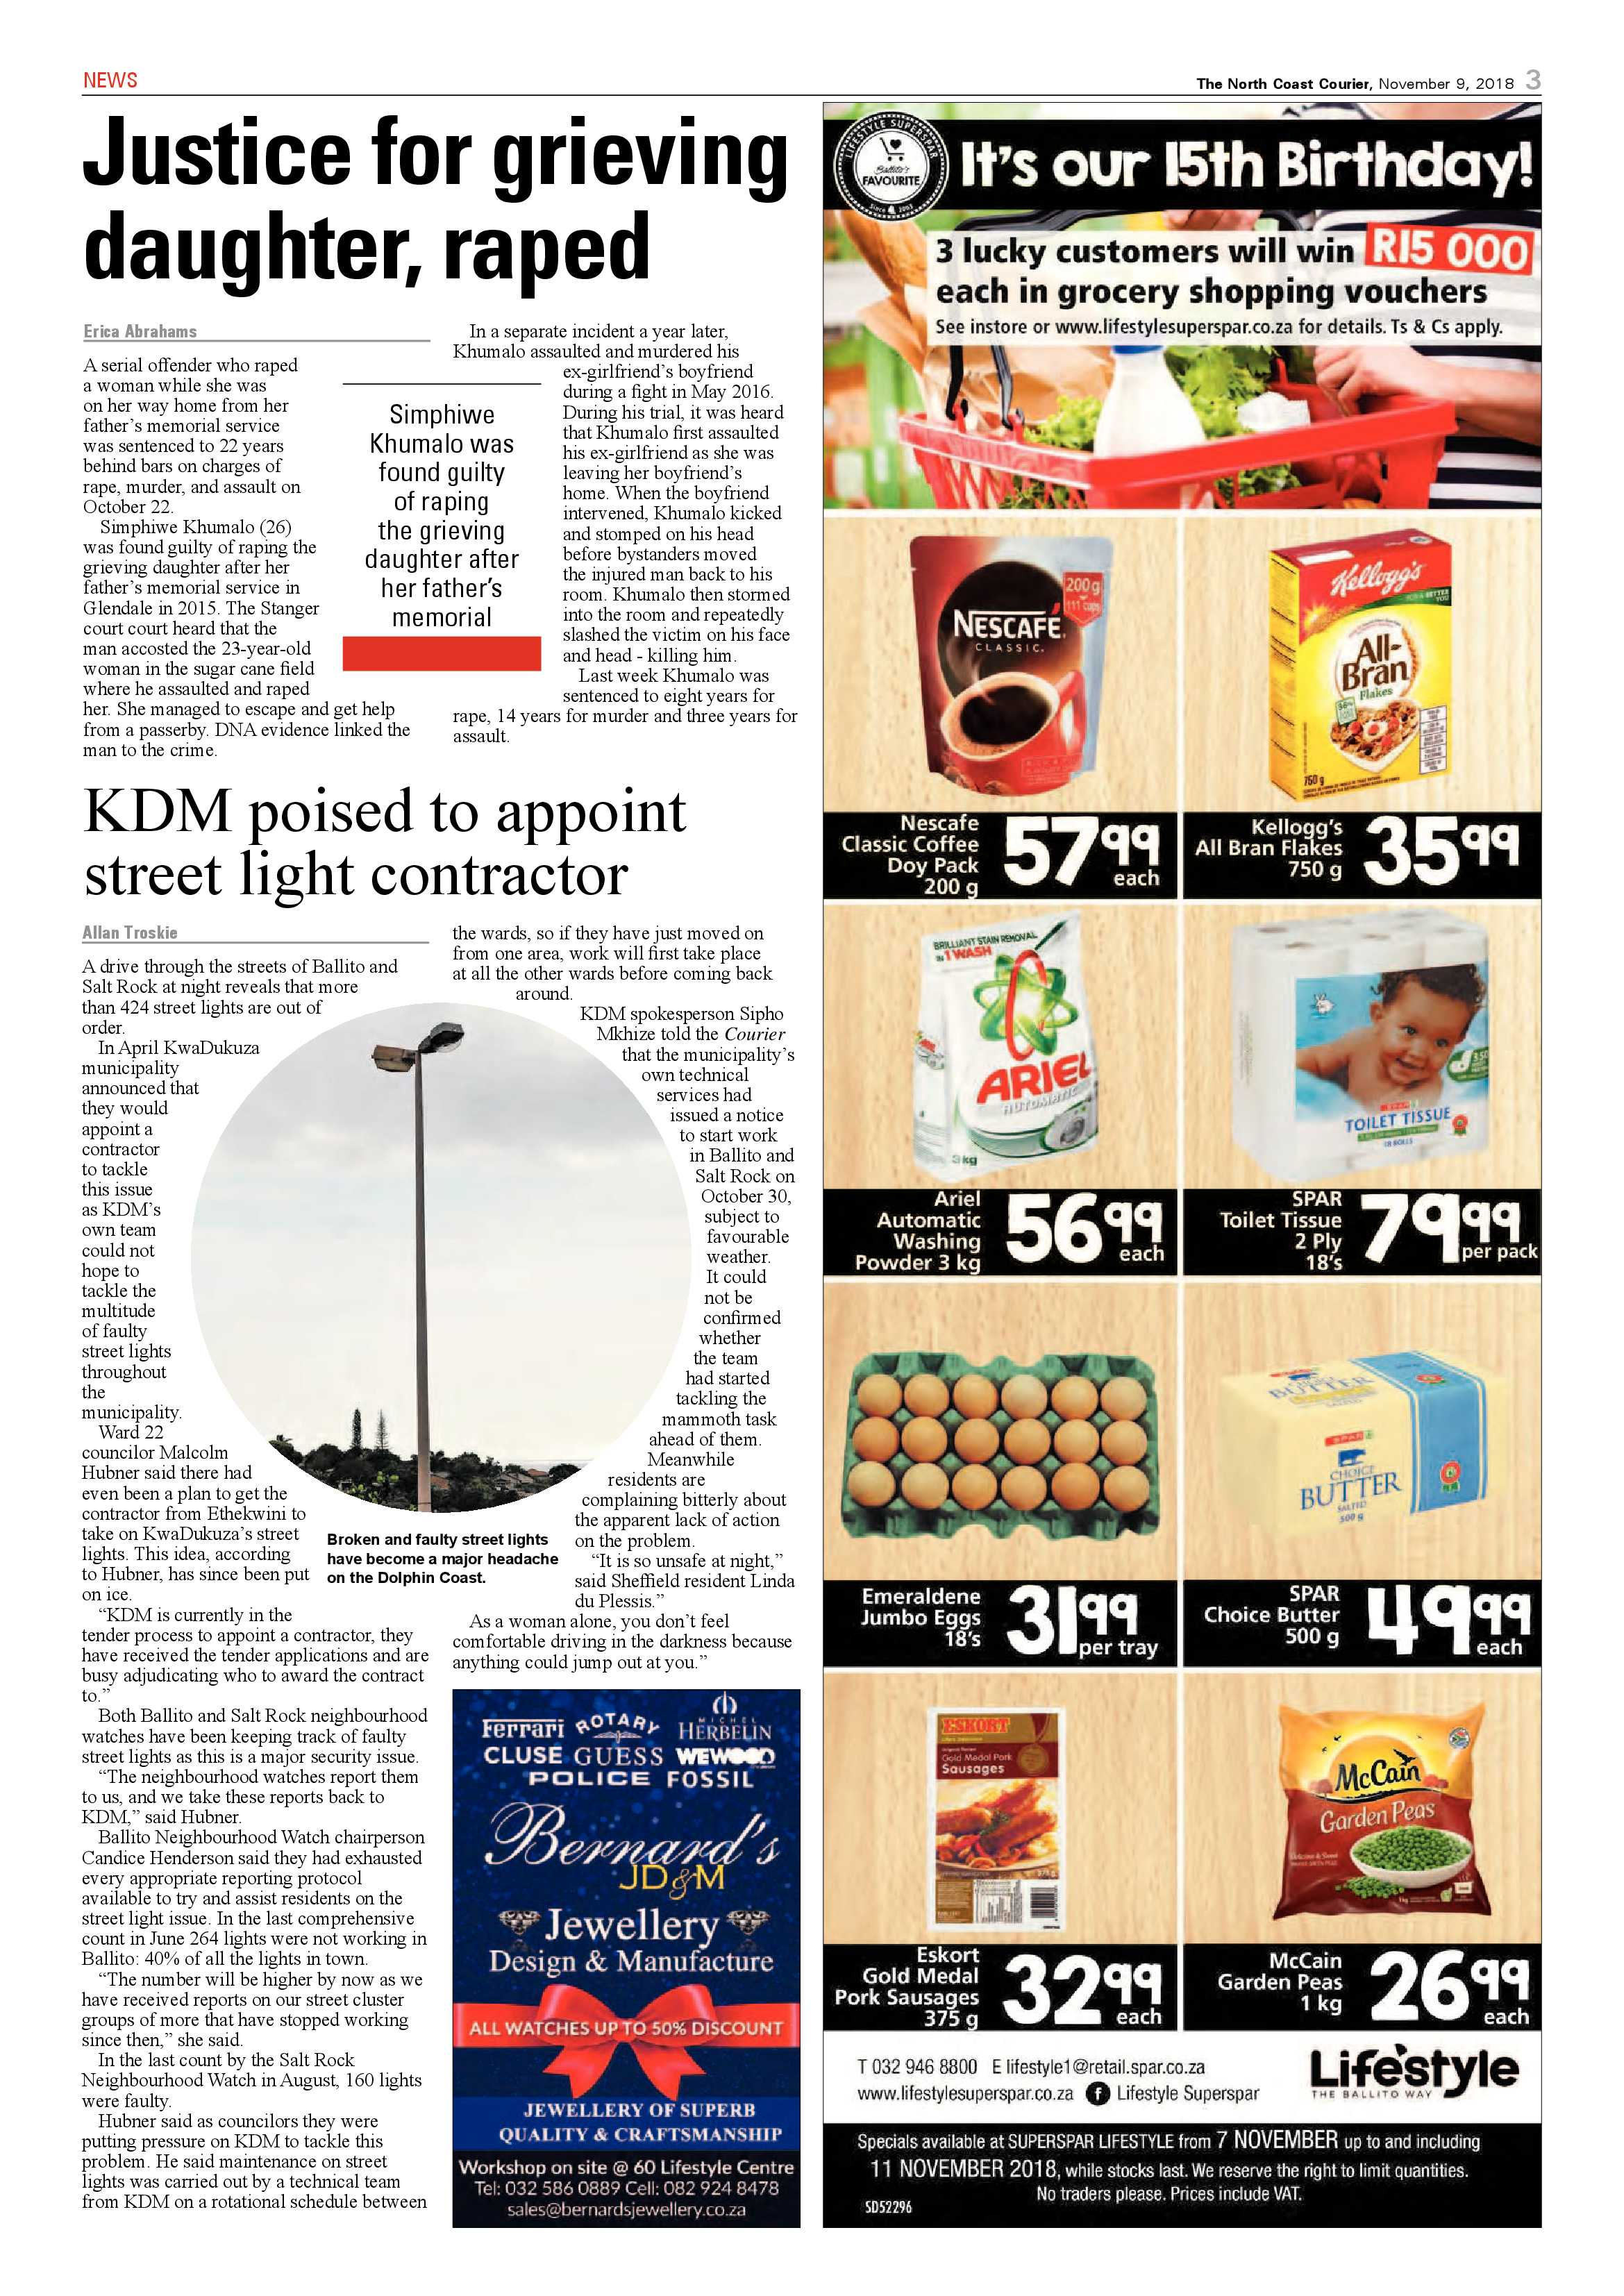 north-coast-courier-09-november-2018-epapers-page-3